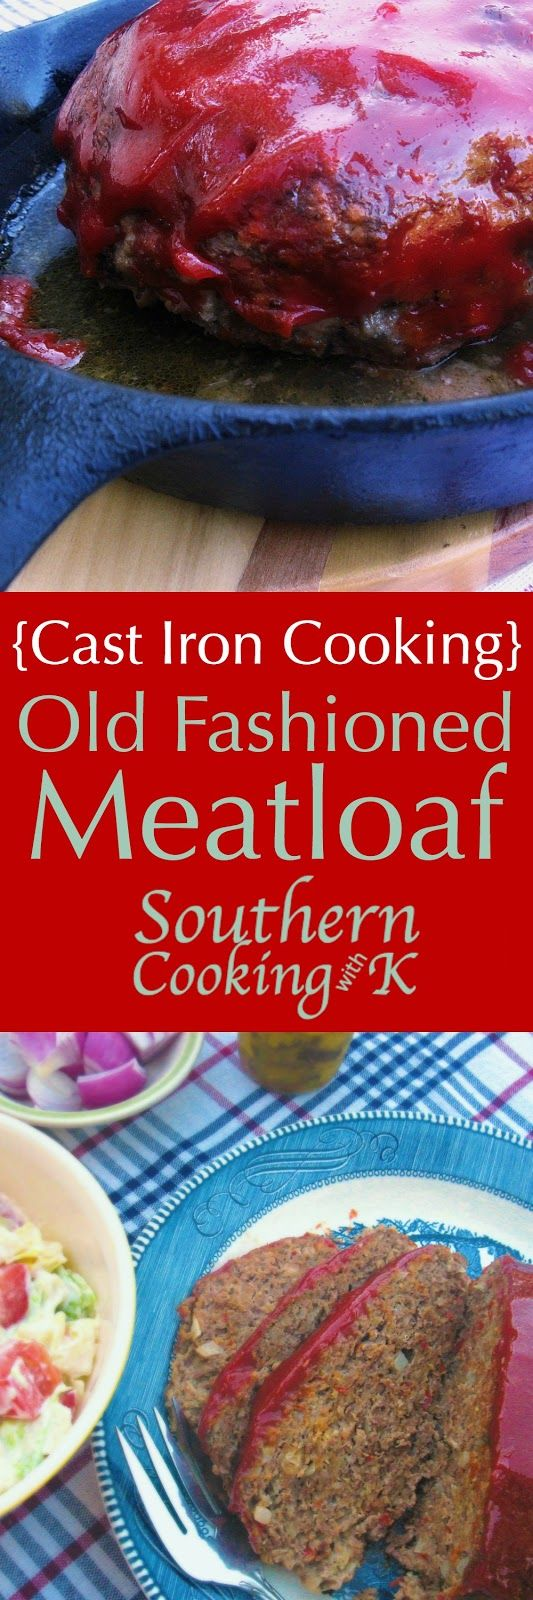 Classic Old Fashioned Meatloaf cooked in a cast iron skillet.  This meatloaf recipe goes way back to the 40's when my Mother-in-law started cooking.   Make a bun shape meatloaf and cook in an inch of water which makes wonderful tomato gravy.